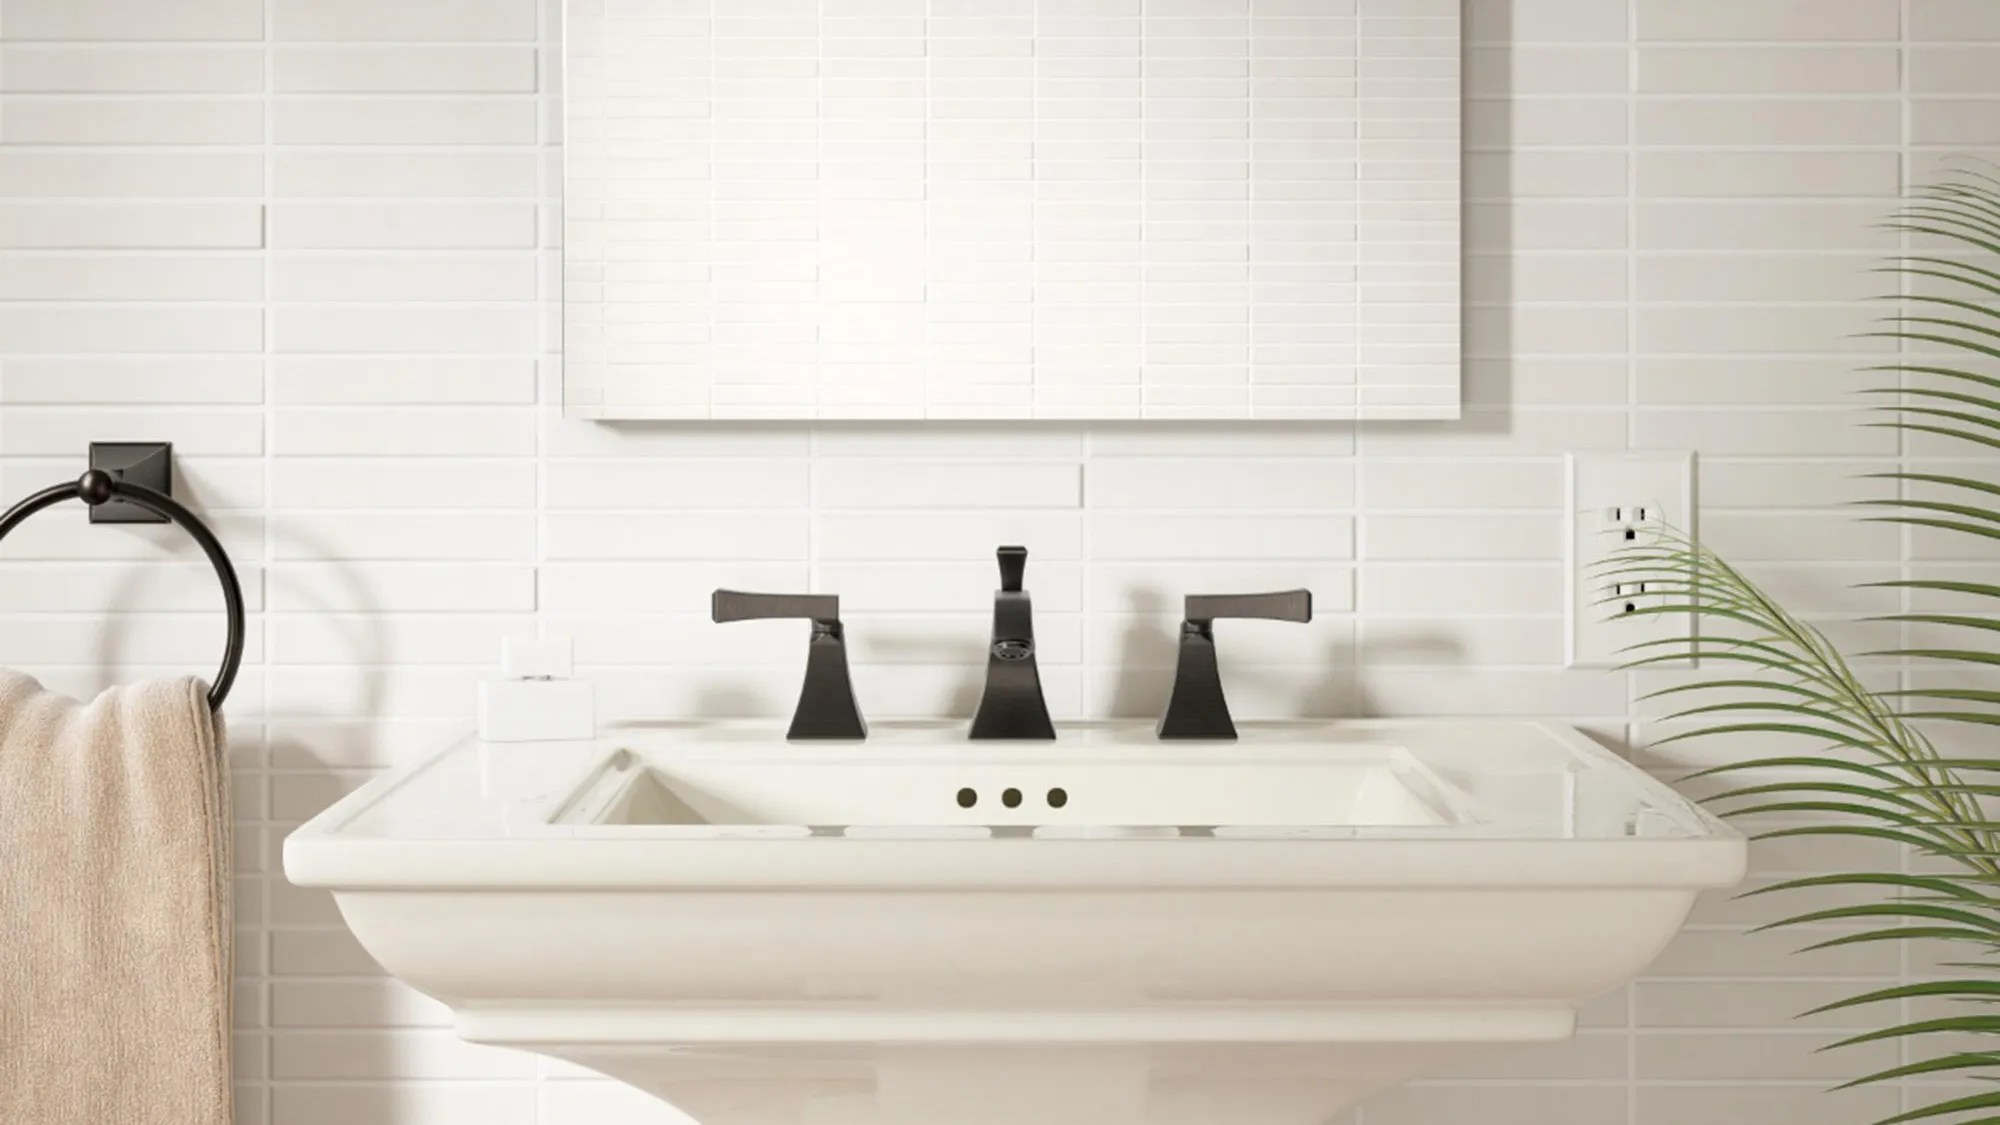 bathroom budget can choose faucet style